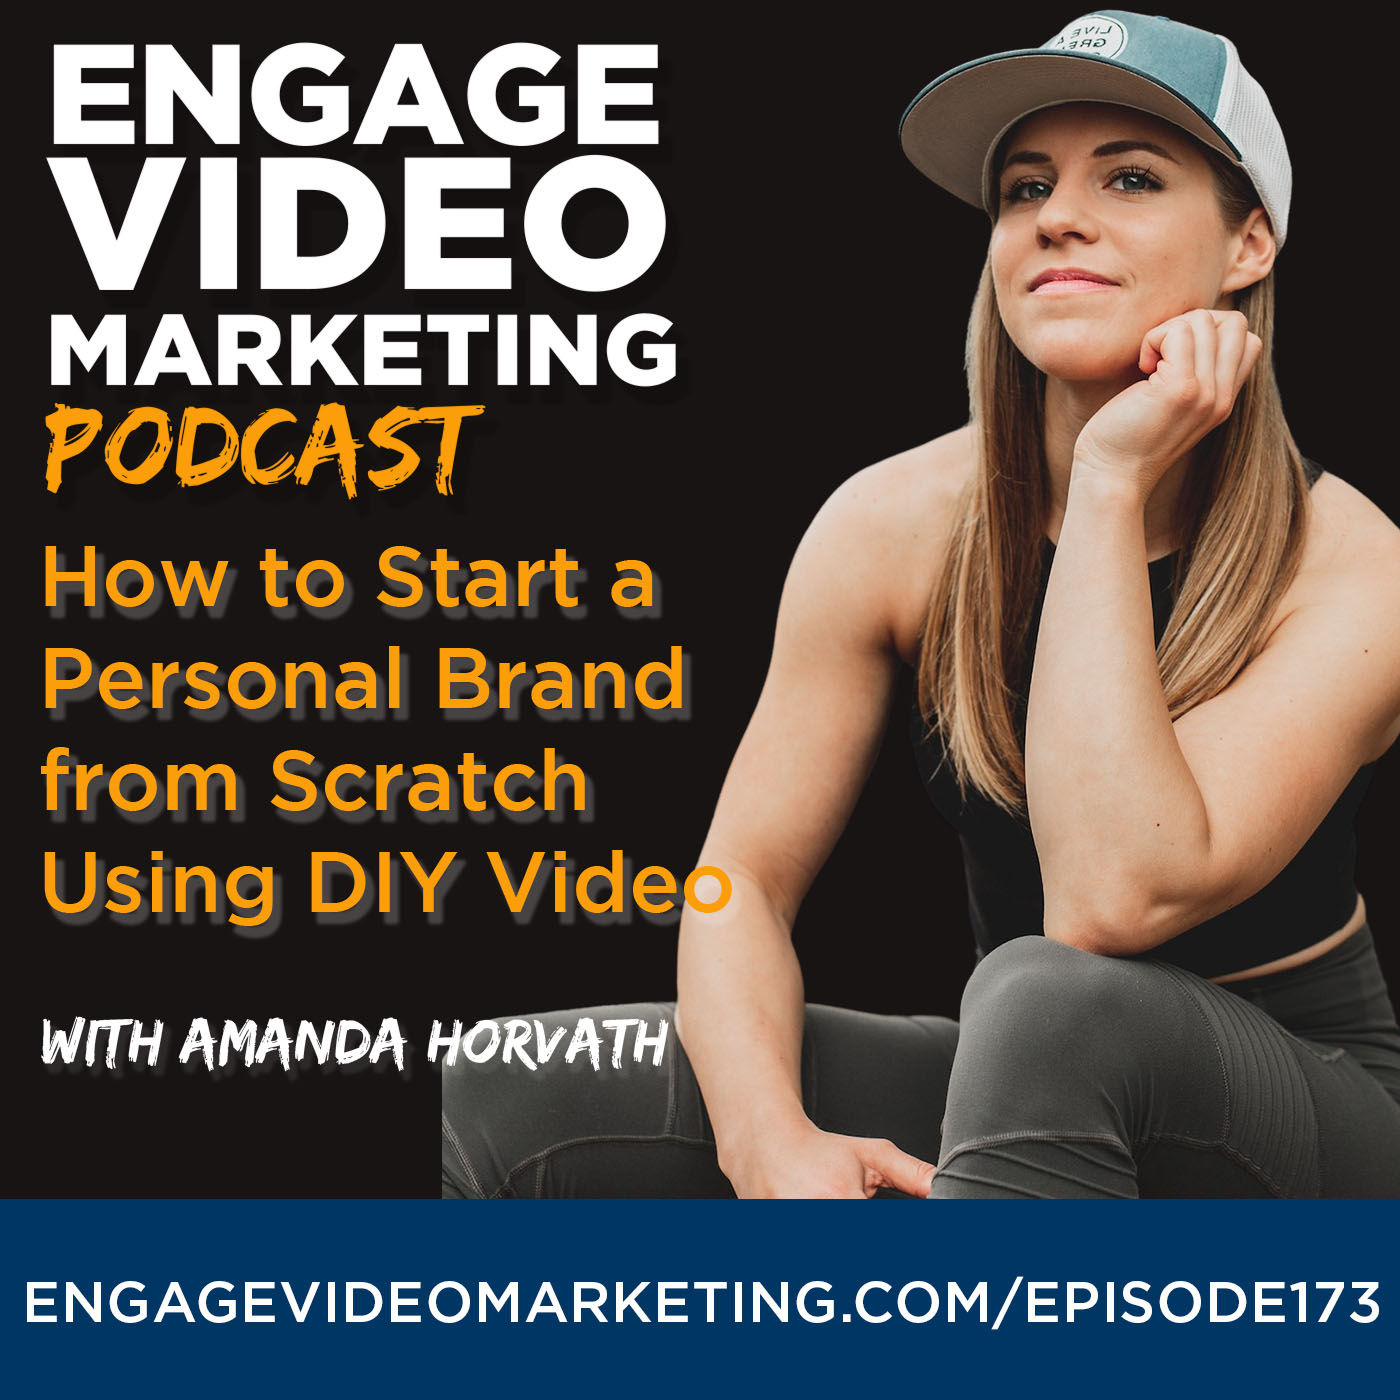 How To Start a Personal Brand From Scratch Using DIY Video with Amanda Horvath